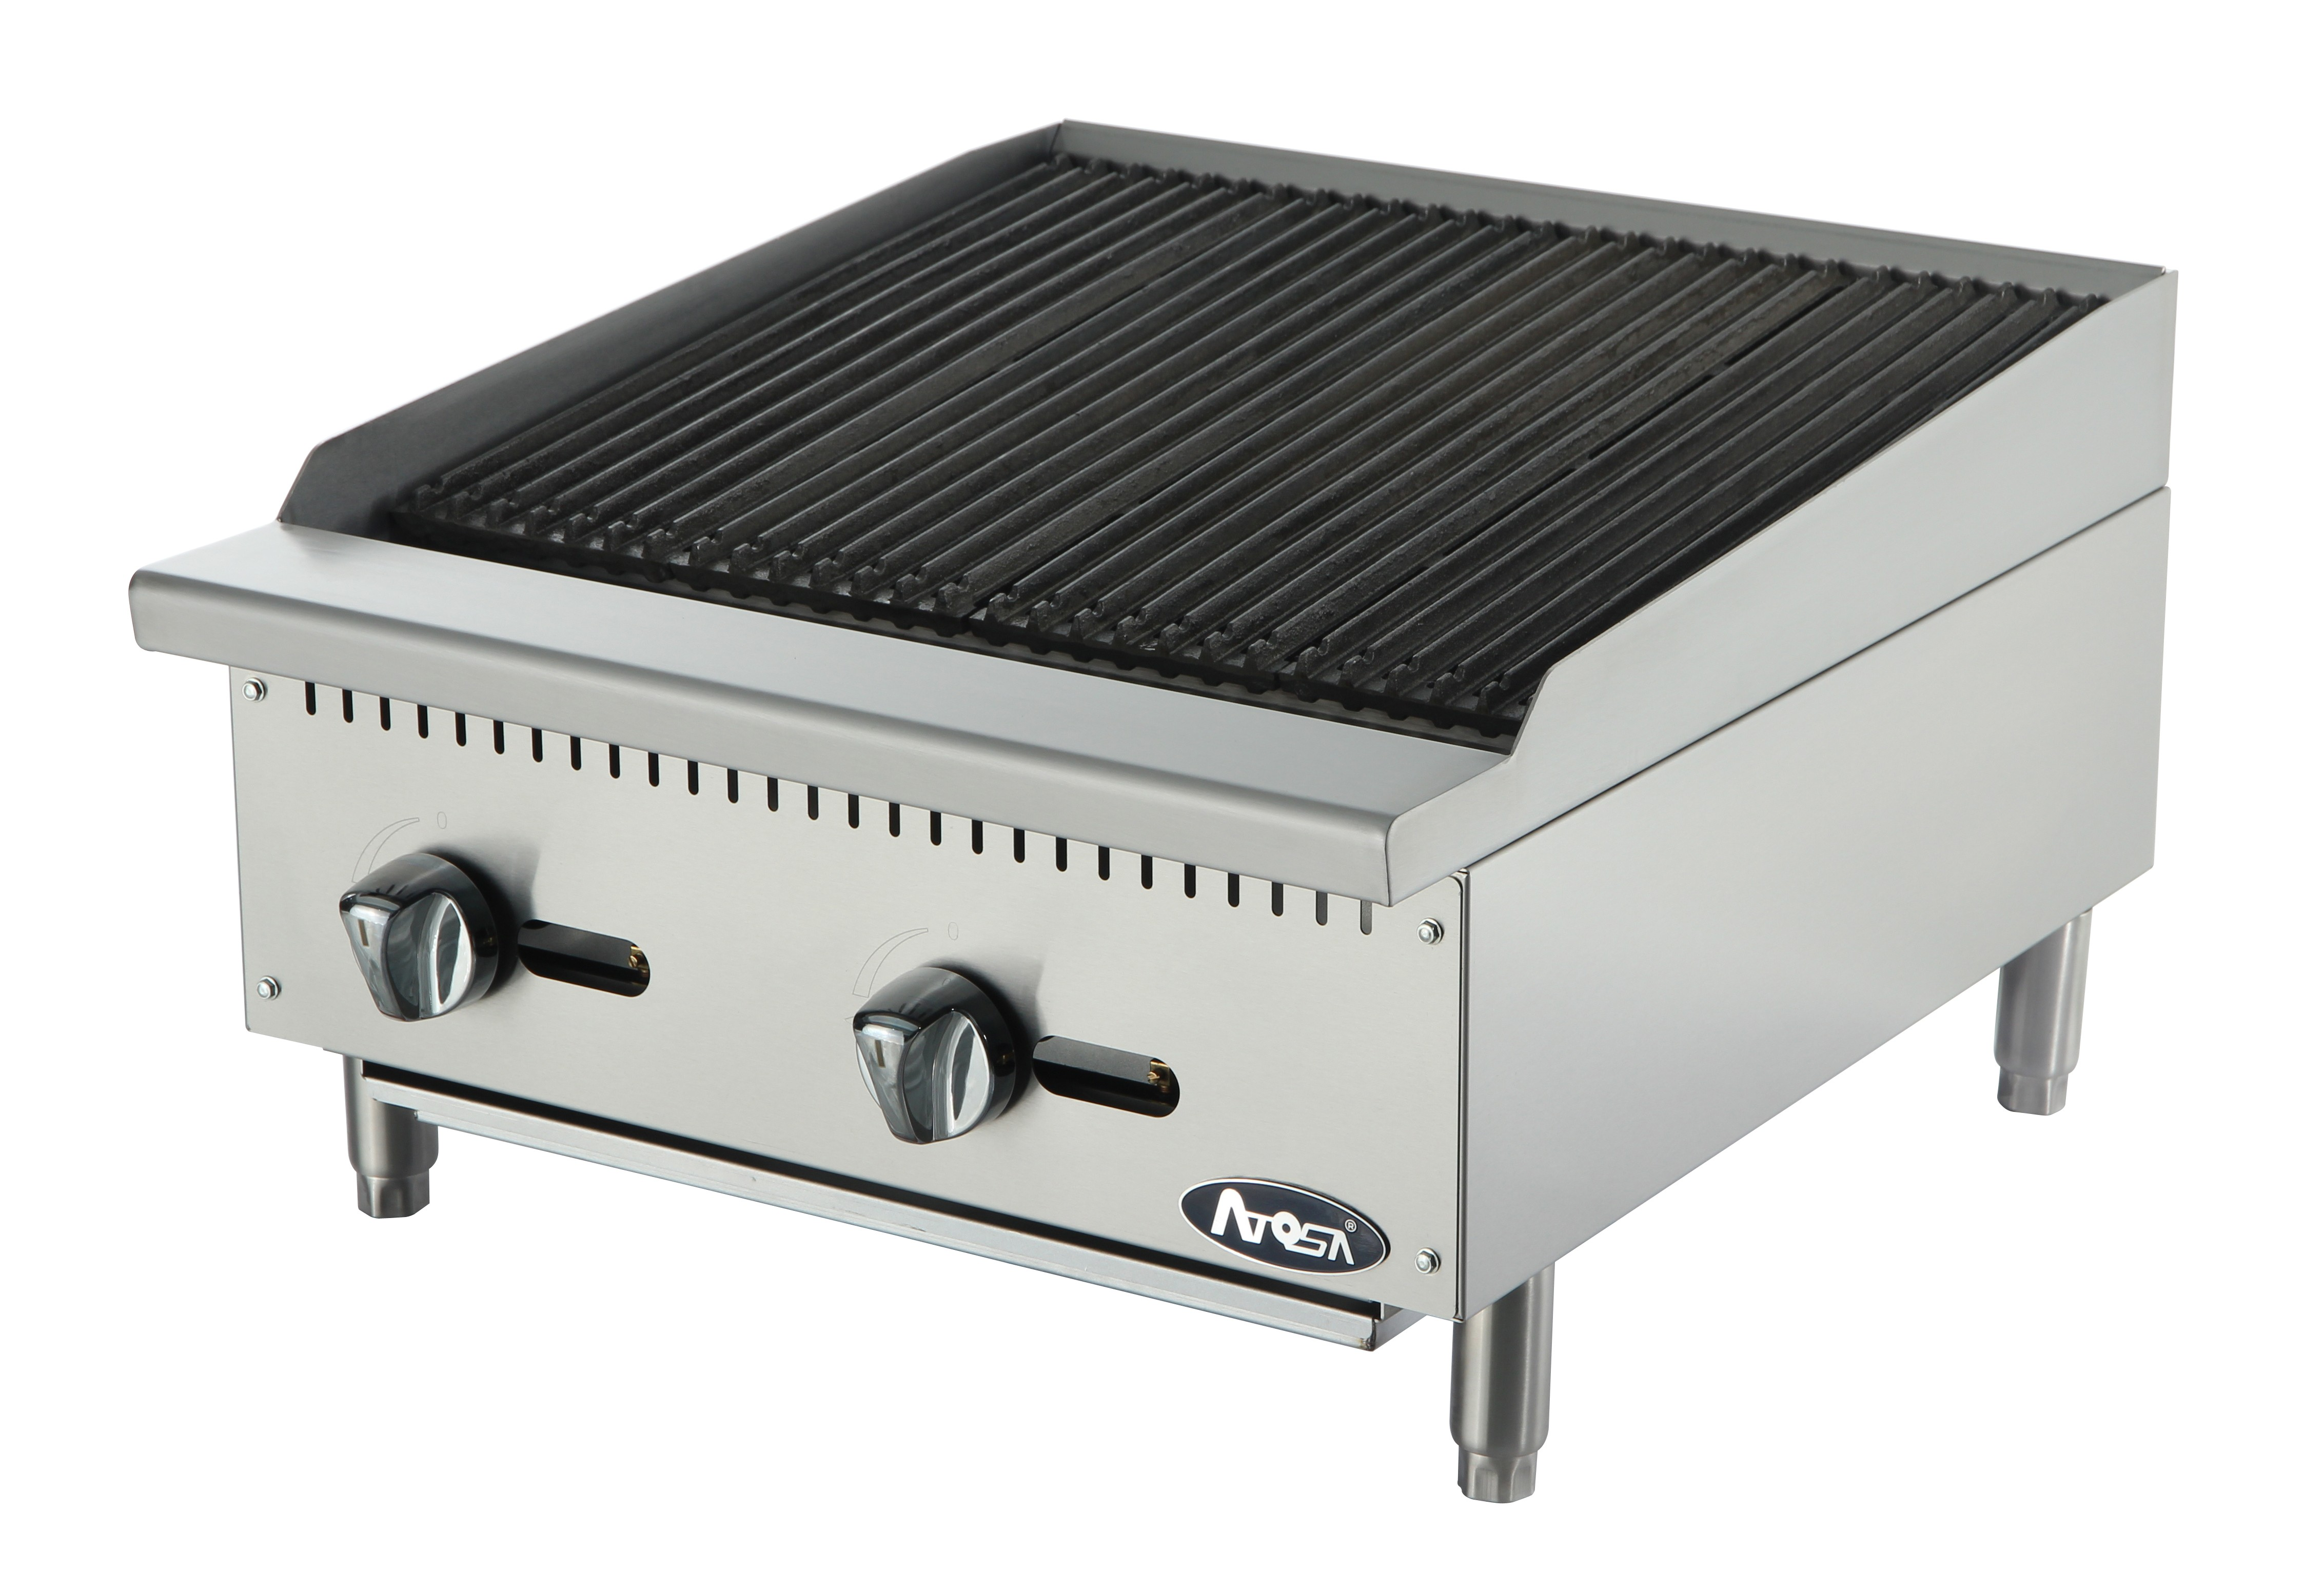 Atosa ATCB-24 HD Heavy Duty Stainless Steel 24'' Char-Rock Broiler